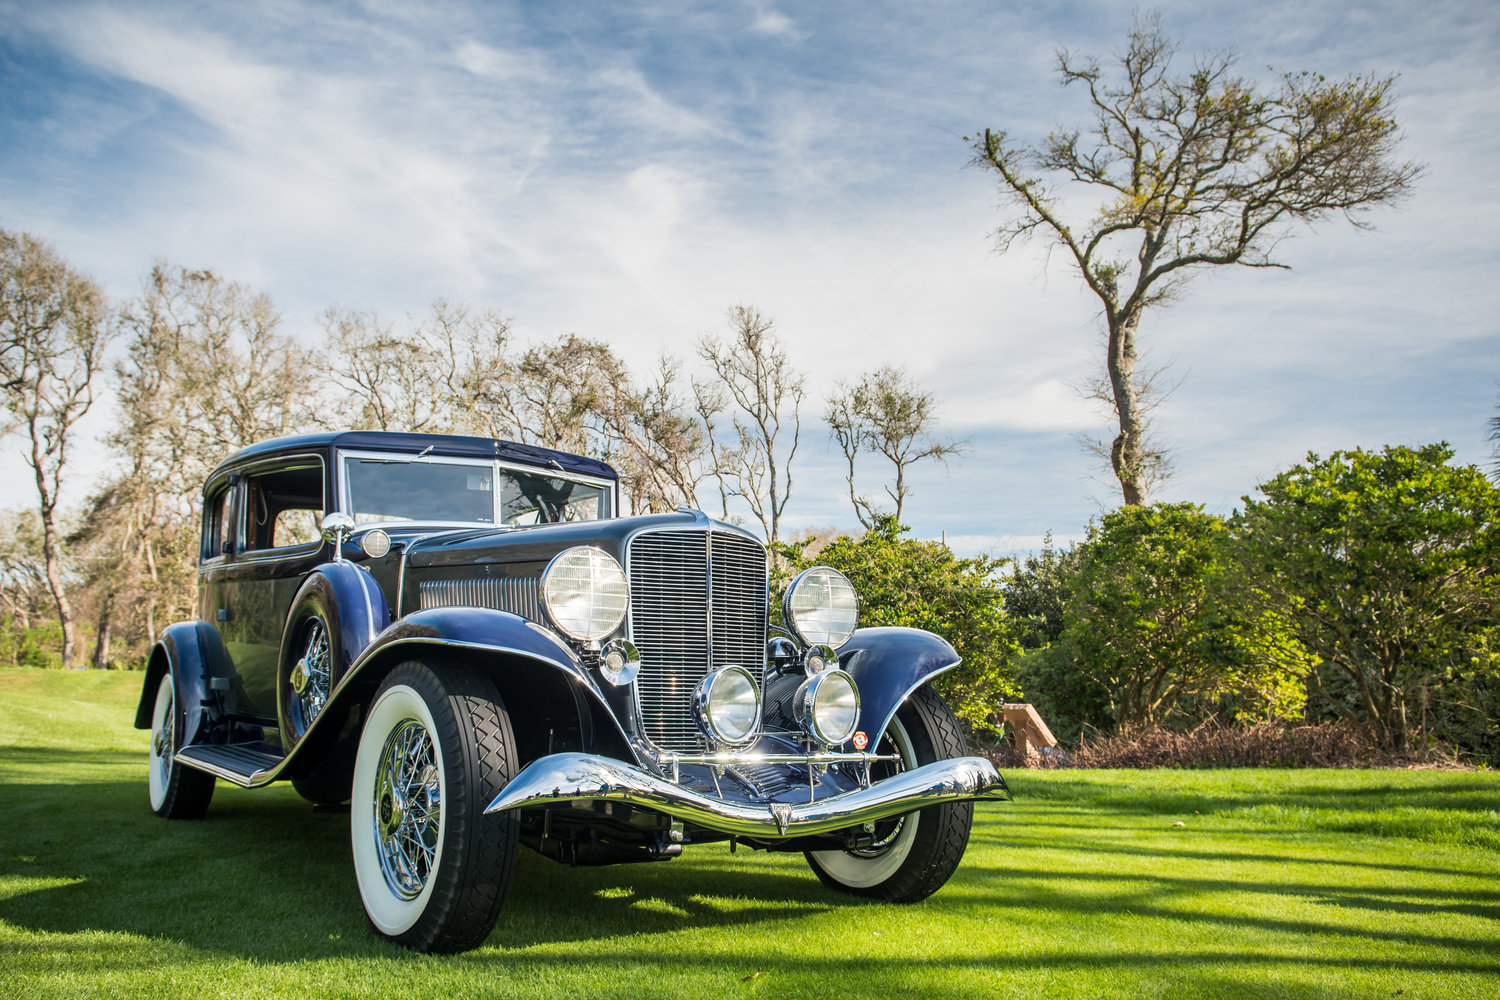 Automotive Photography by Deremer Studios LLC - 2017 Amelia Island Concours